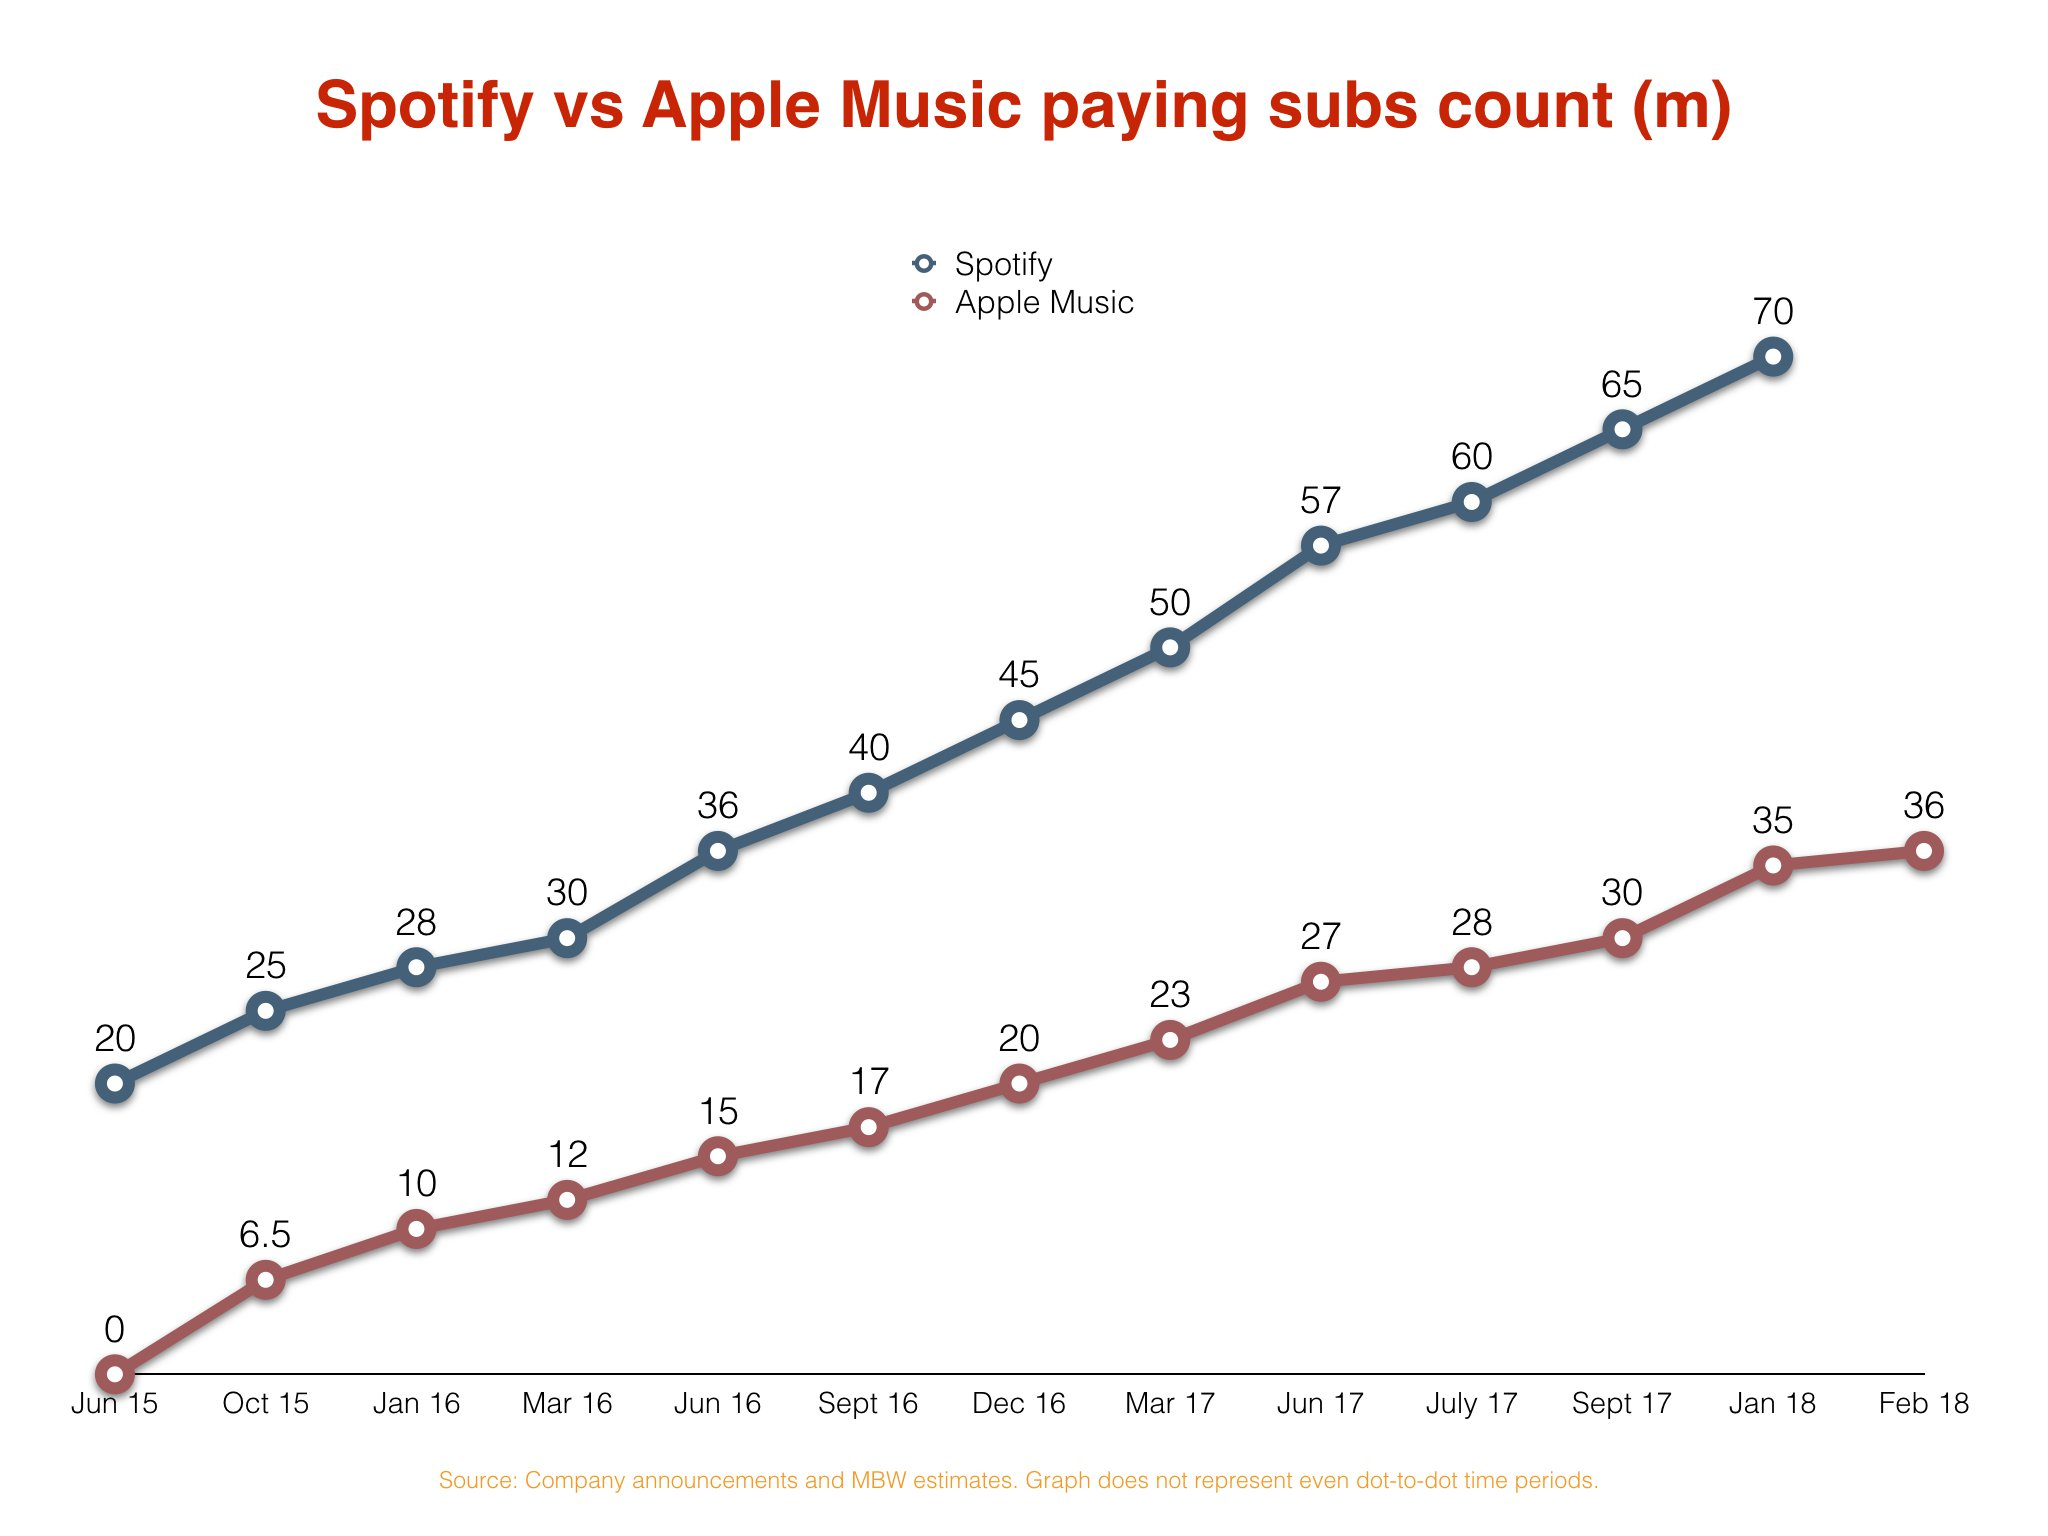 Apple Music hits 36 mln subs, set to overtake Spotify in US